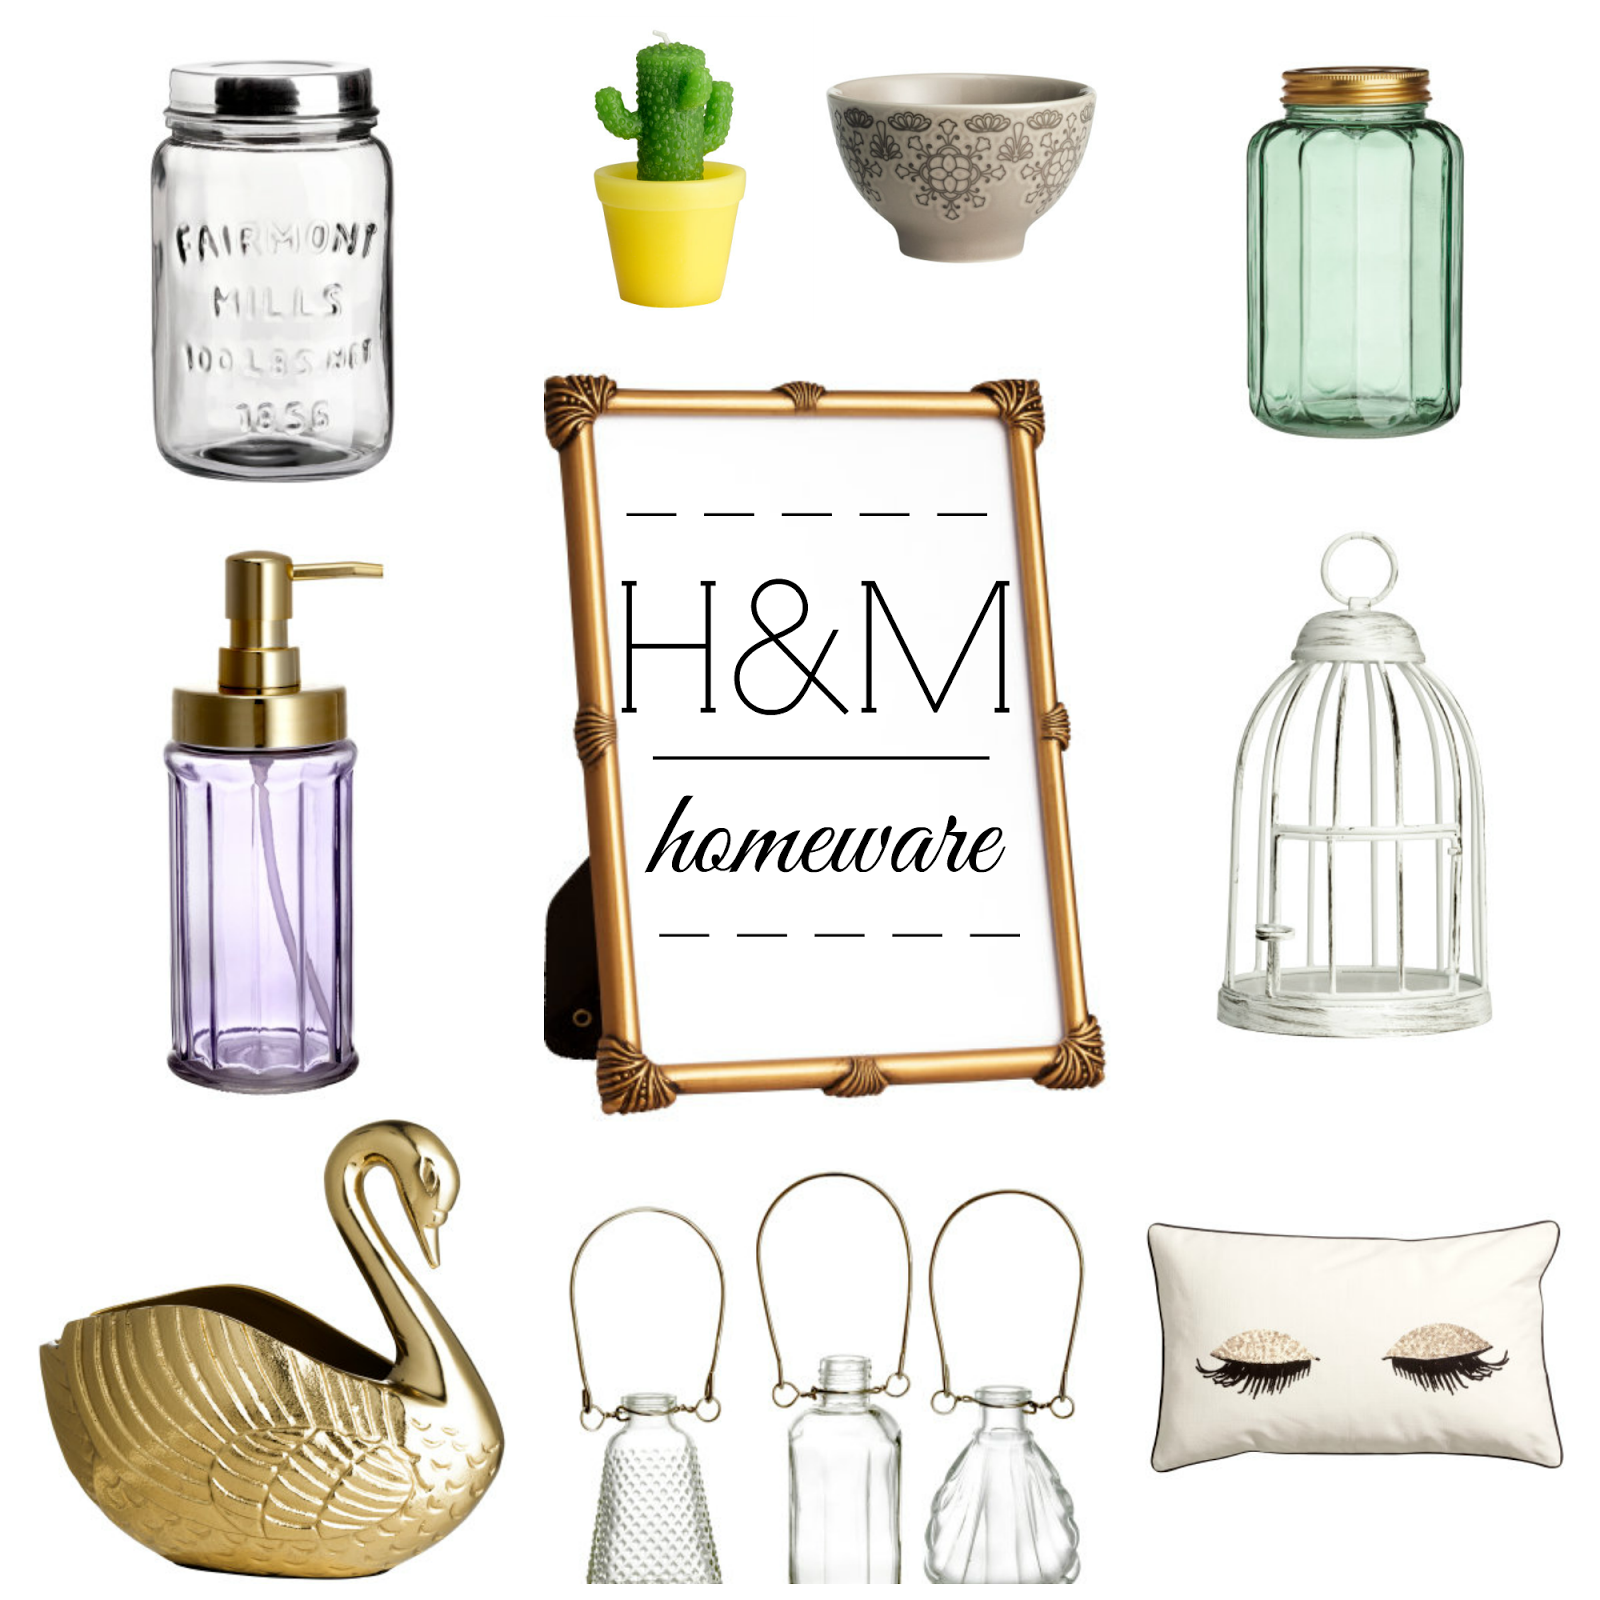 h&m homeware interior design wishlist photo frame bowl cushion cactus candle birdcage